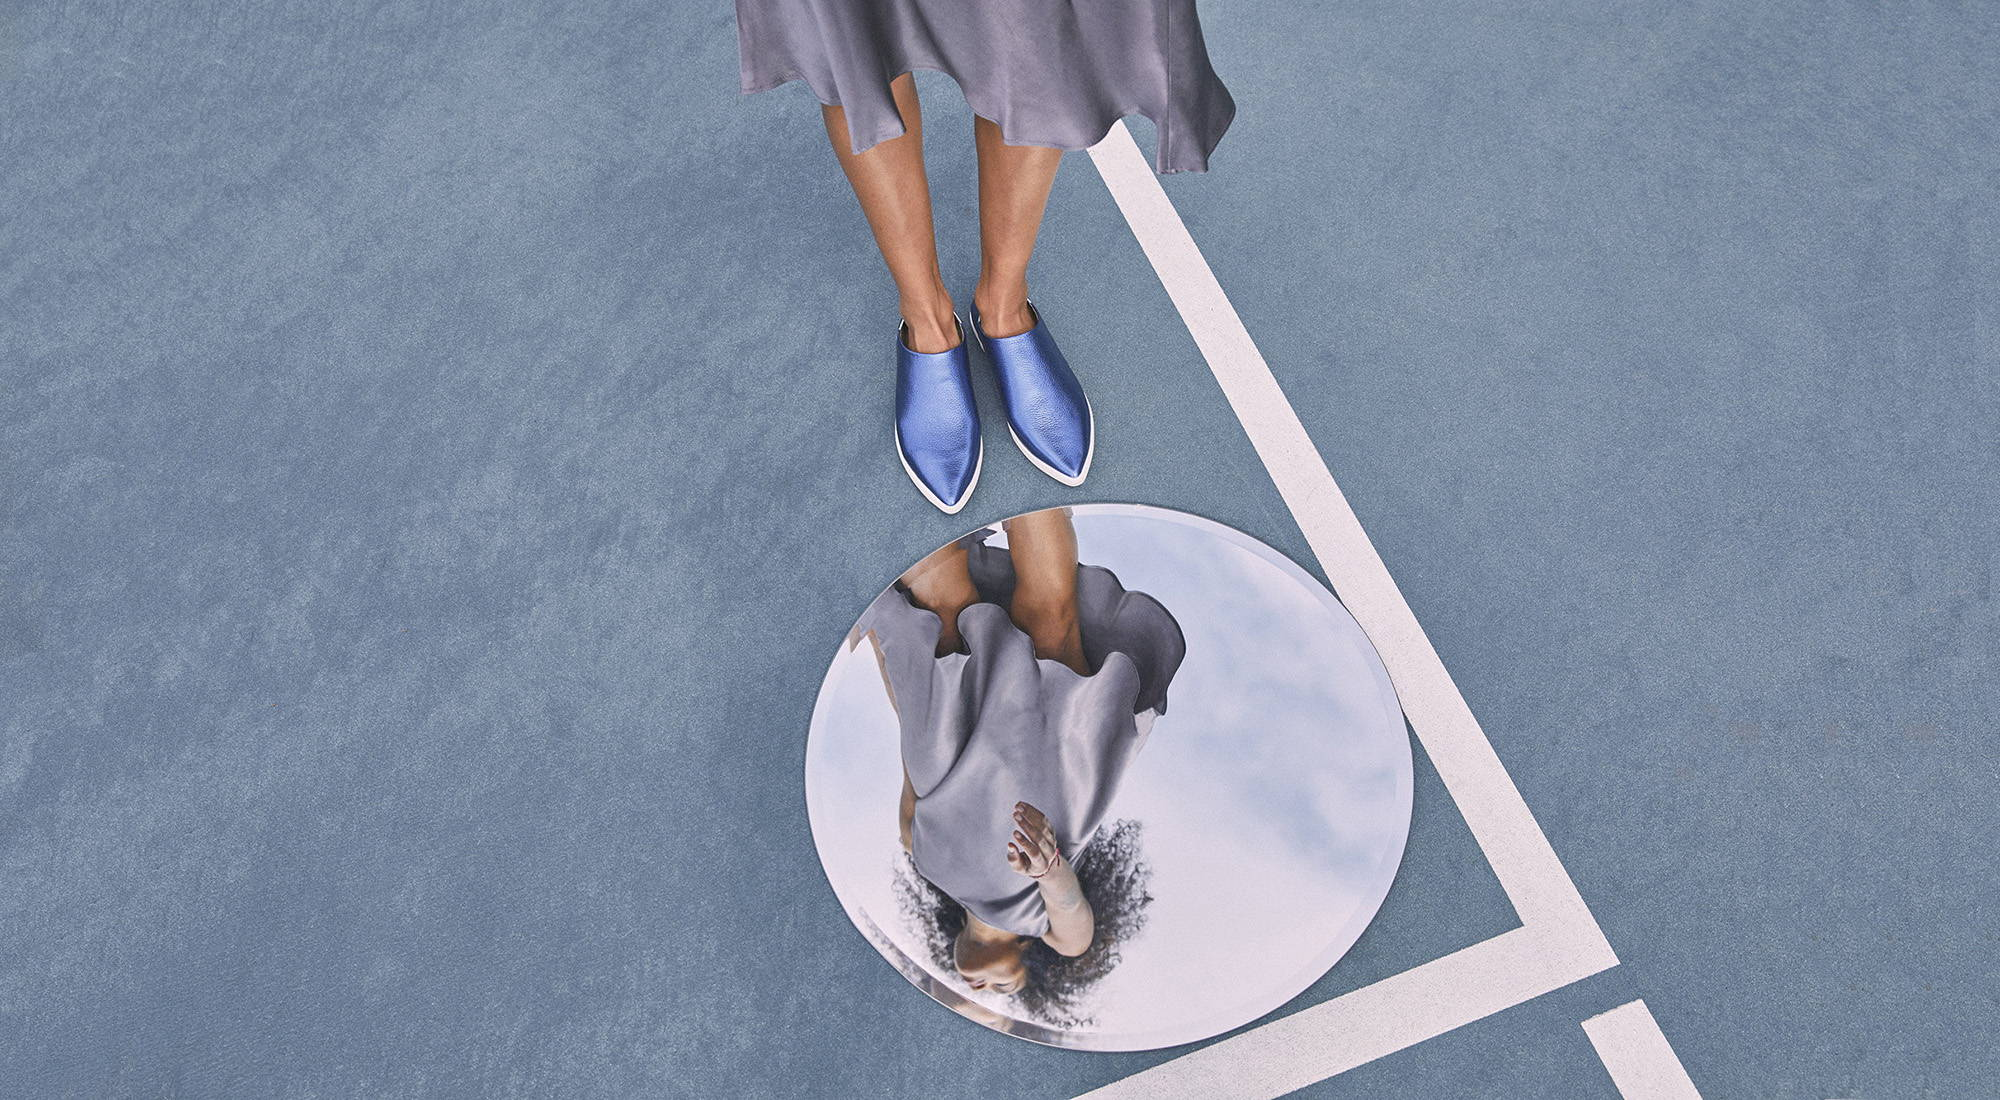 Silver shoes on tennis court